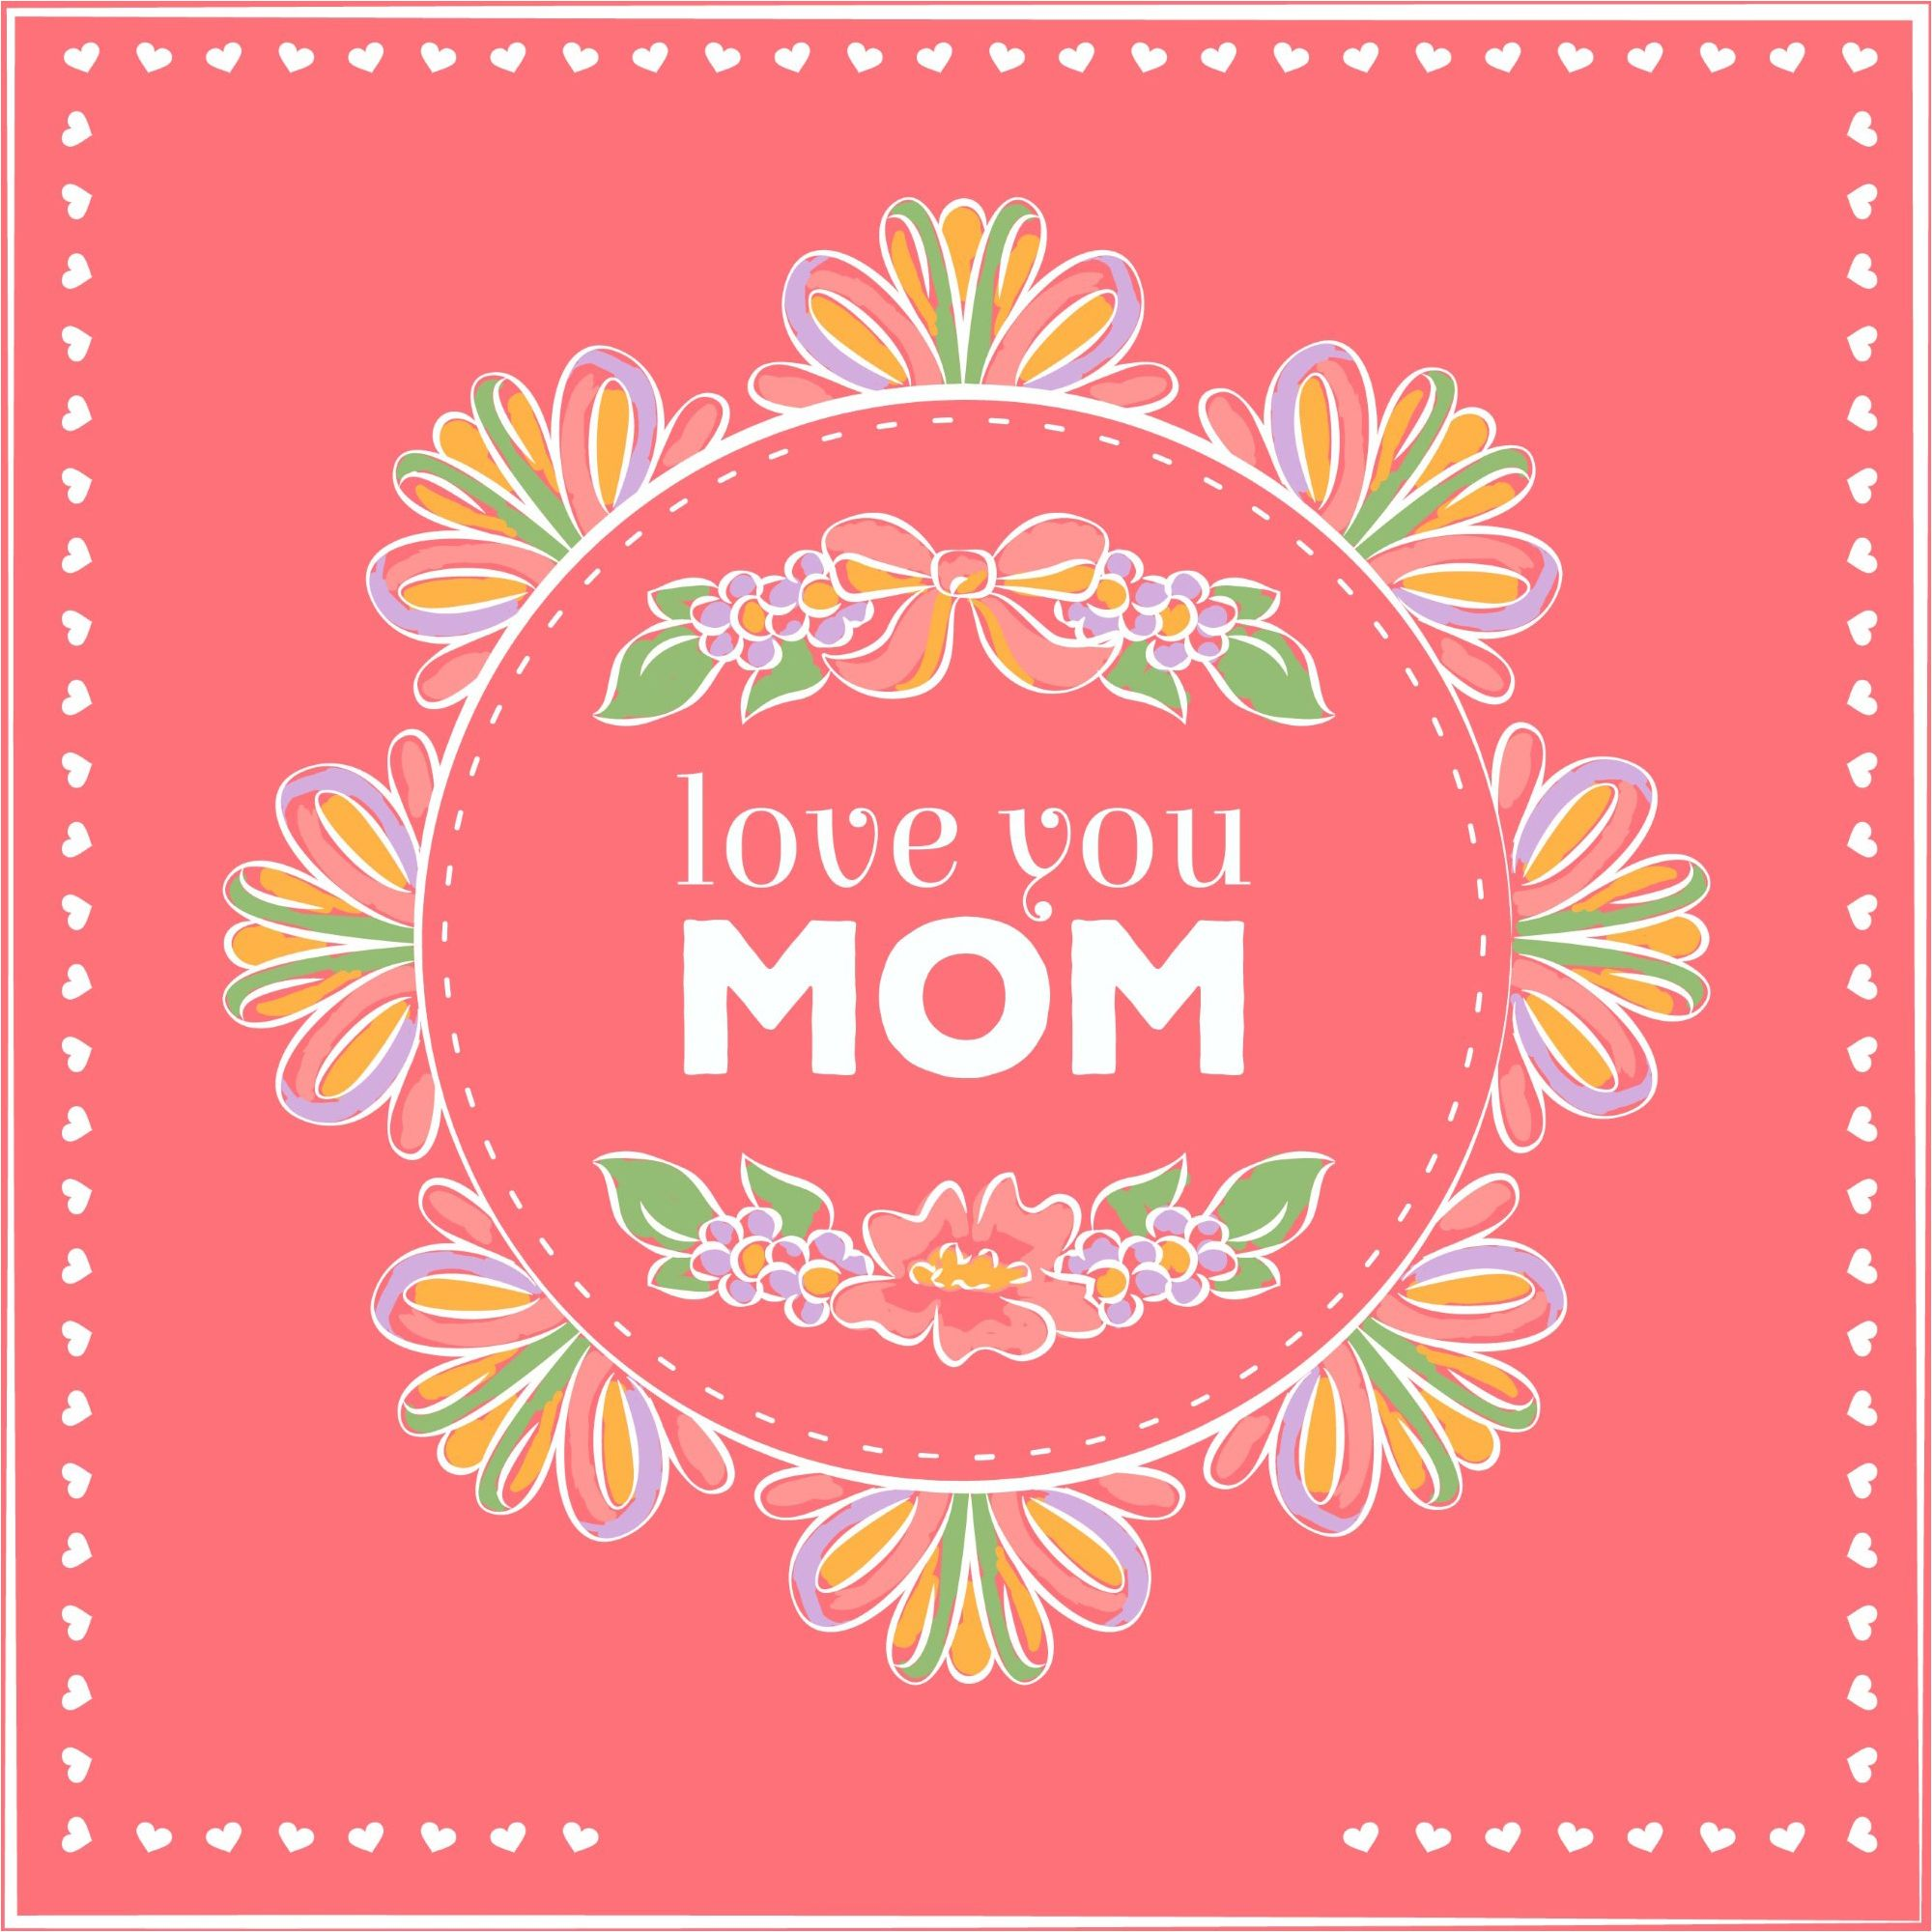 Love You Mom Happy Mothers Day Greeting Card Design Vector